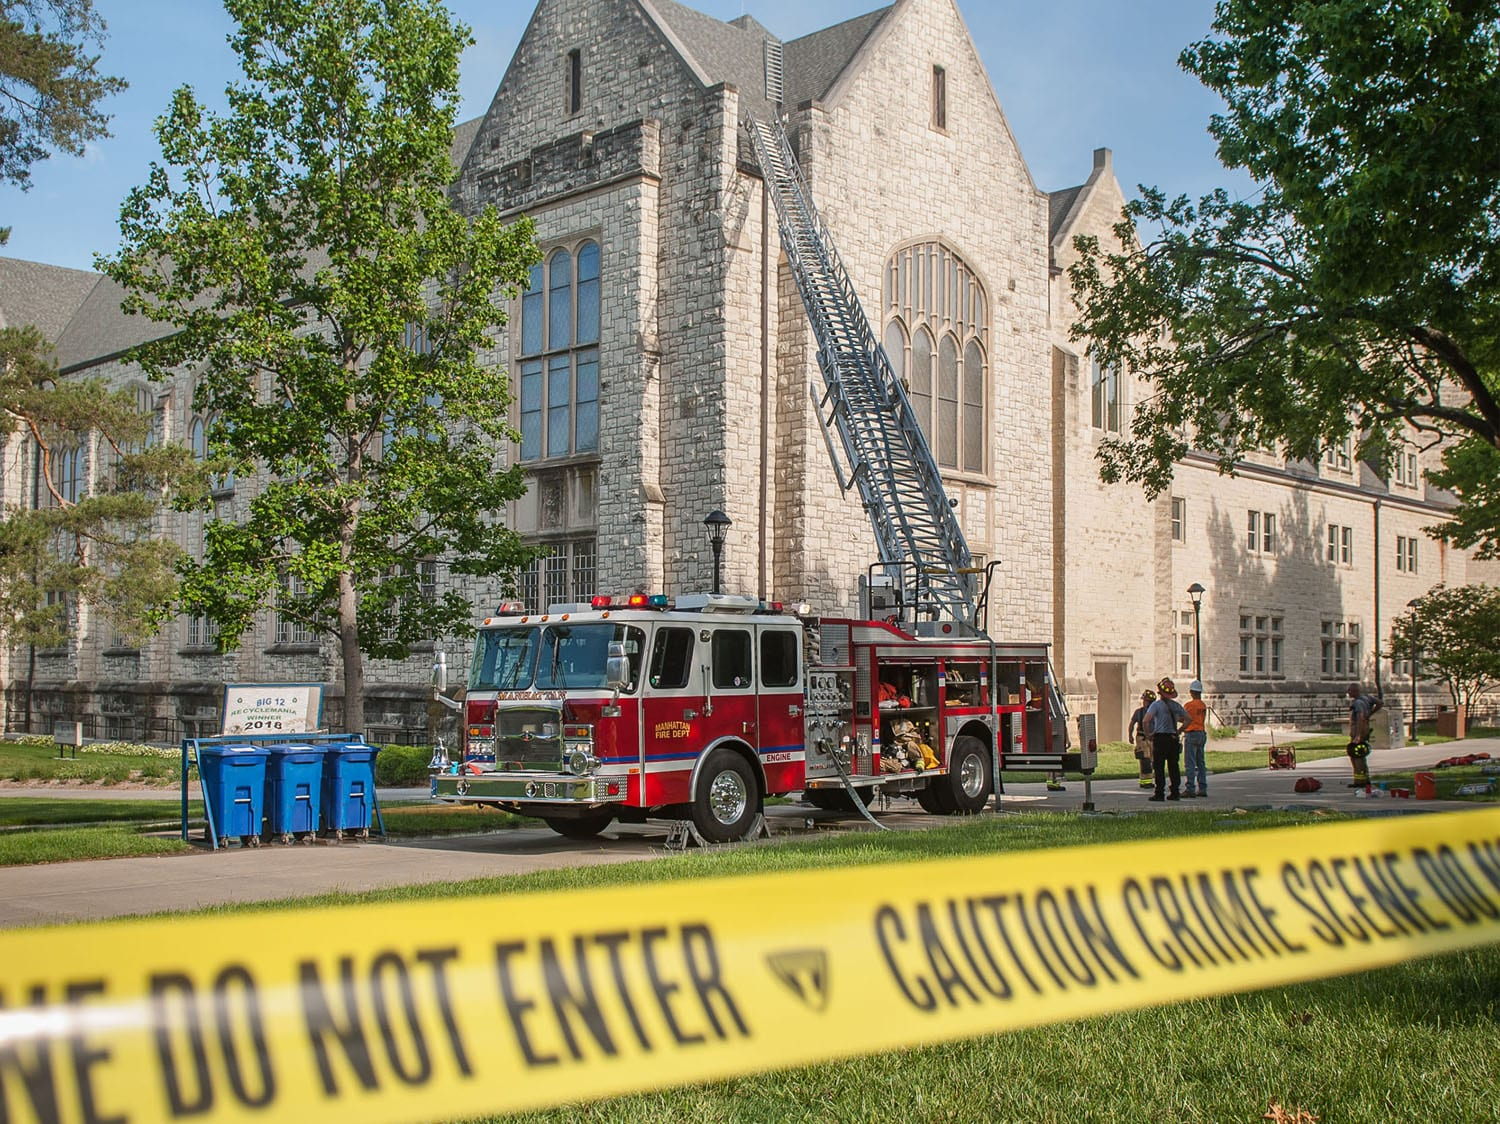 Yellow crime scene tape stretches across the foreground. A red fire truck with a metal ladder extends onto the roof of a limestone building.